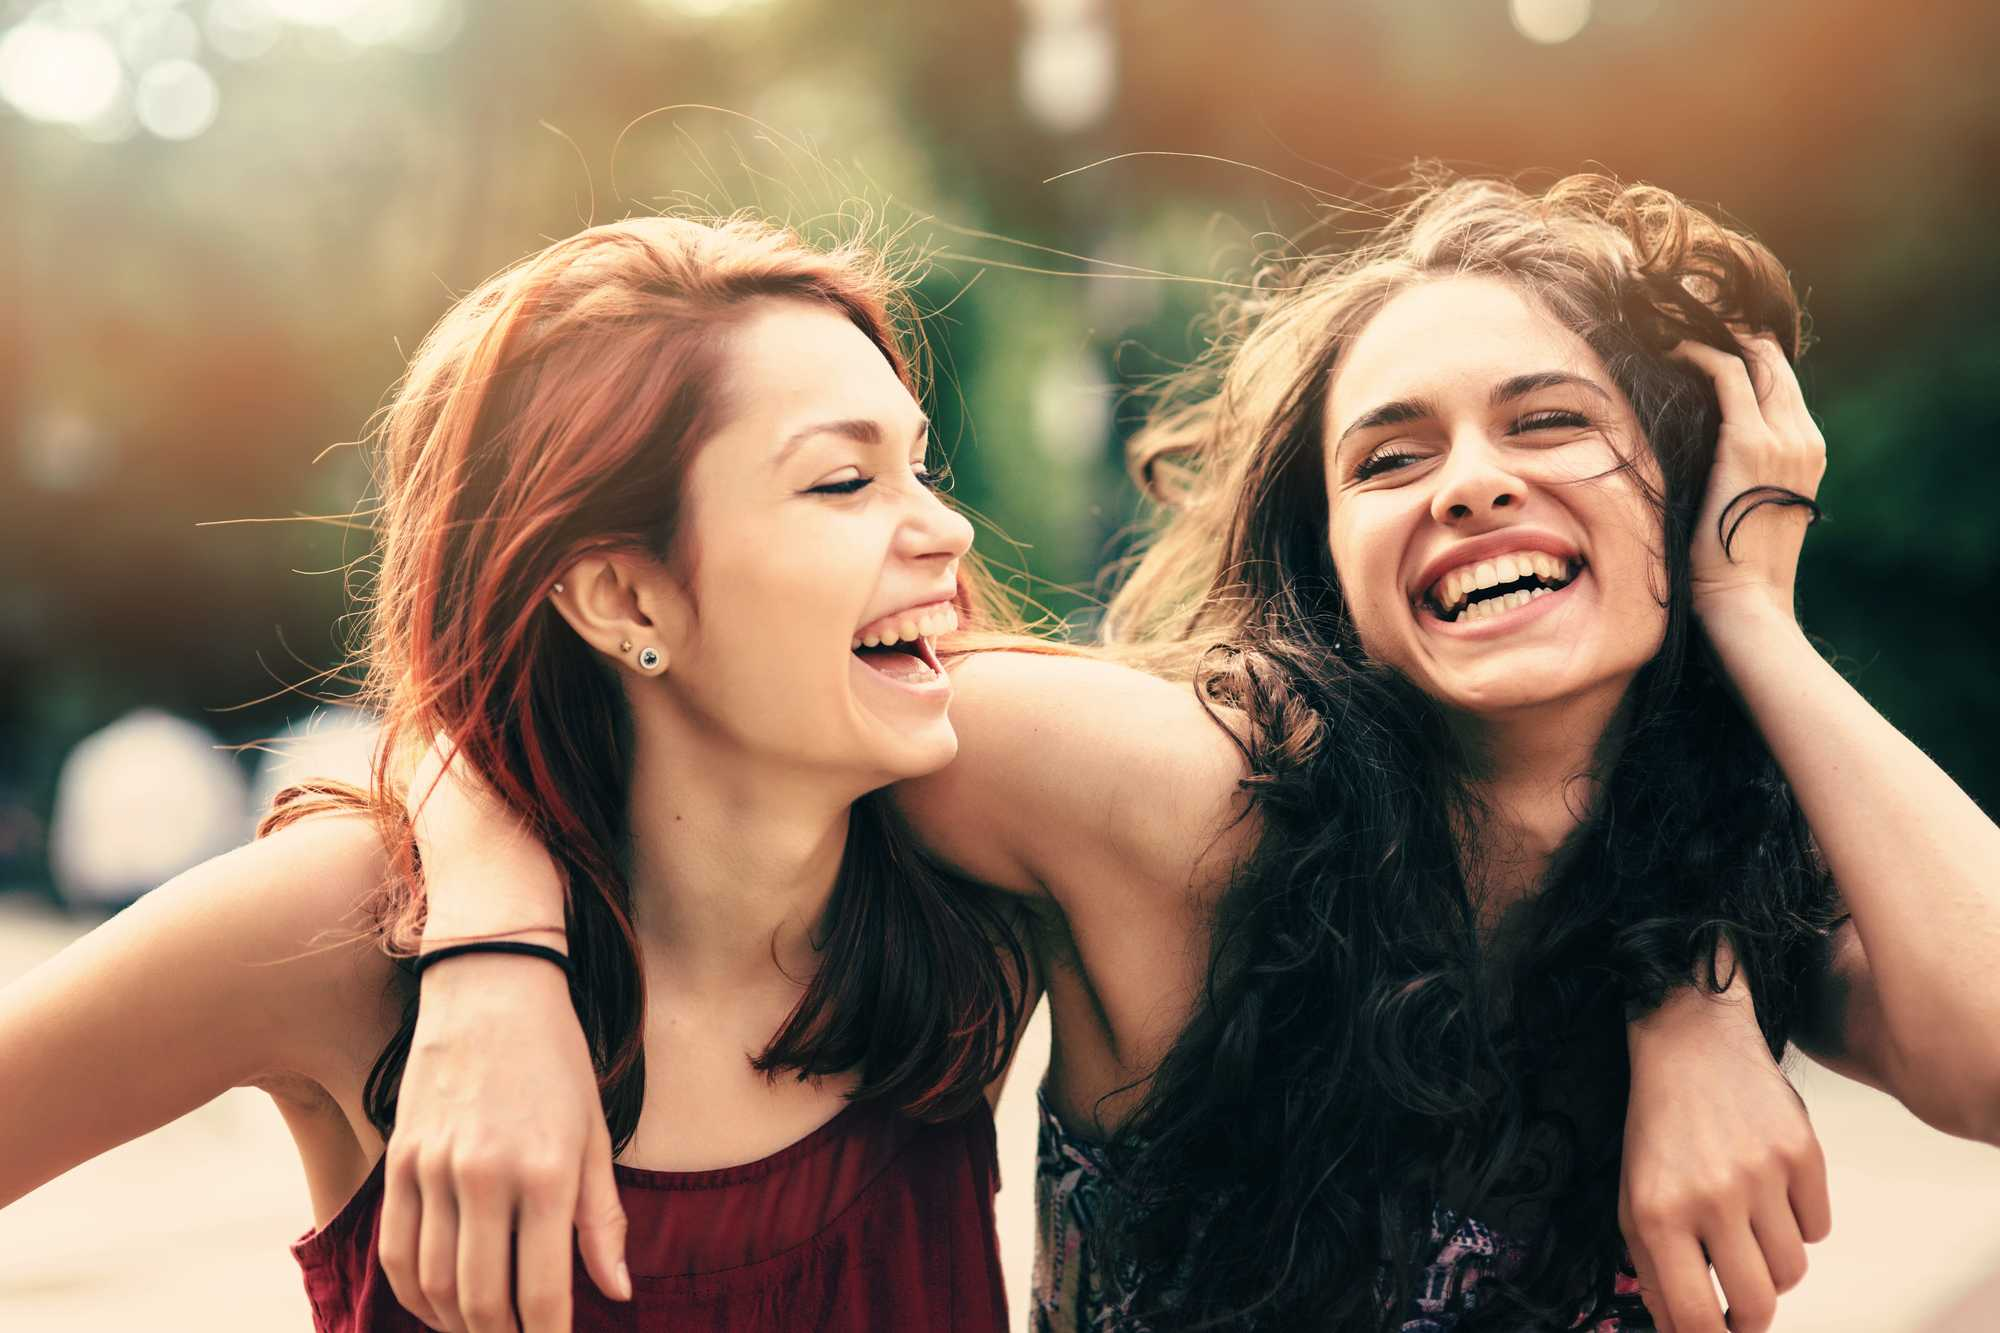 shampoo for red hair two girls laughing